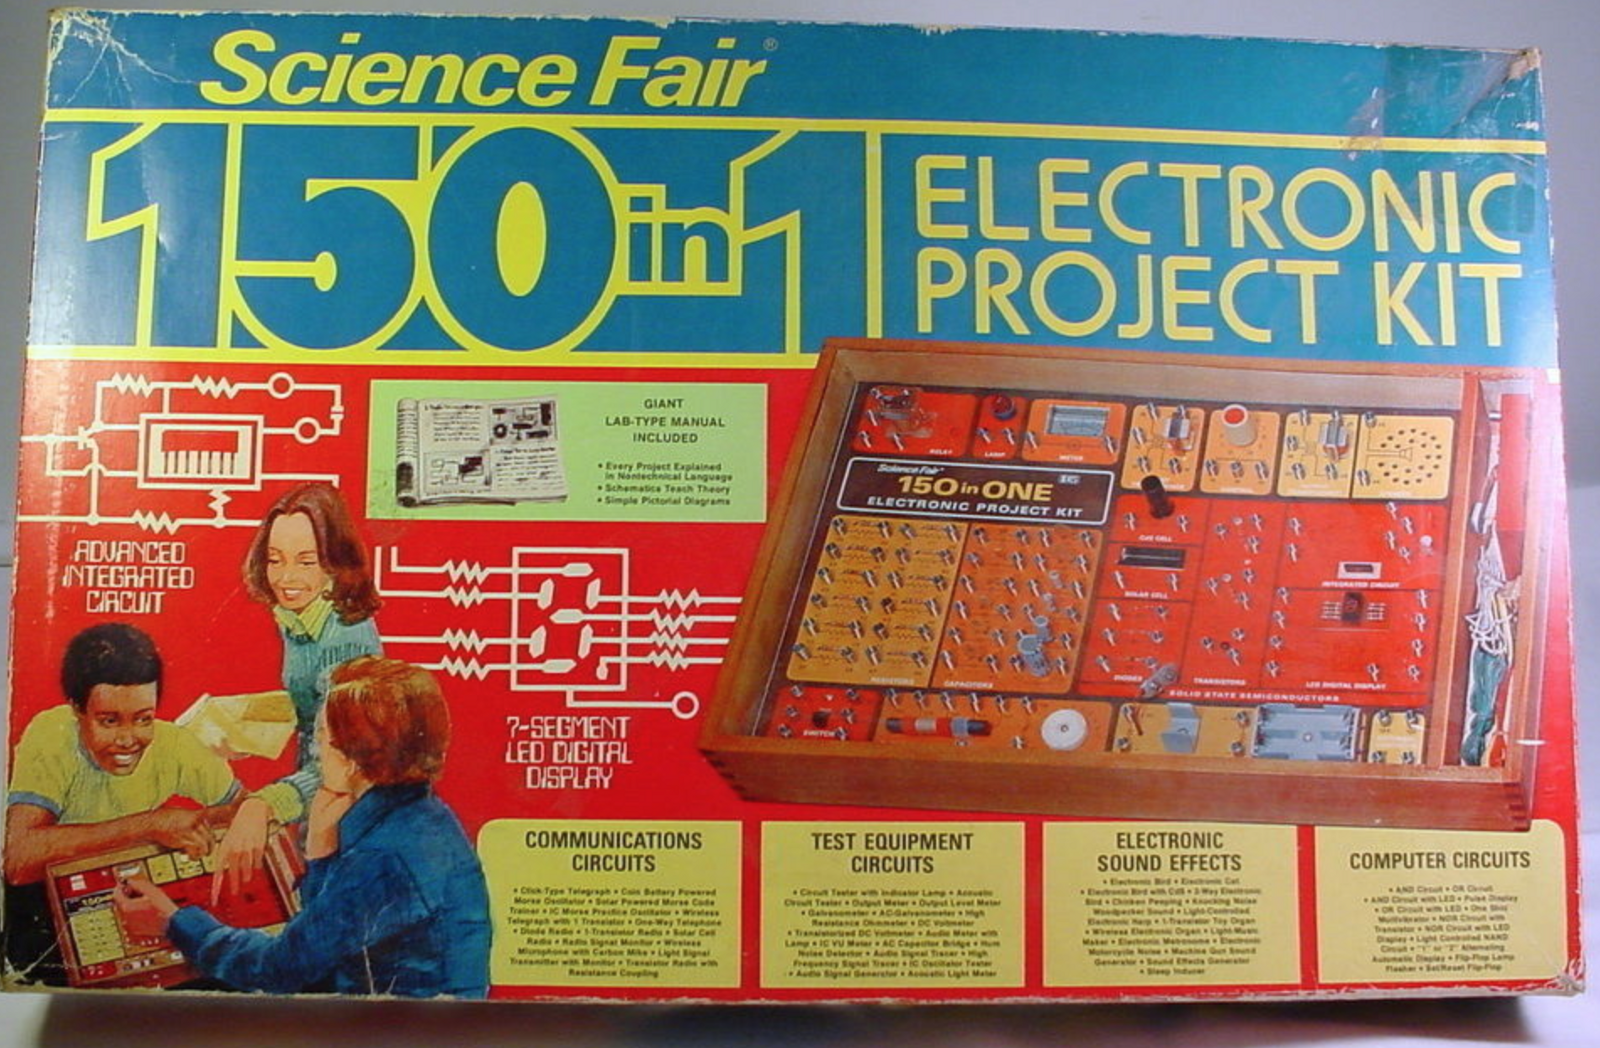 Electronic Project Kits Hands On With A Vintage 160 In 1 Voltage Snap Circuits Wiki Or The Elenco Mx 908 300 Ebay Same Components As Radio Shack Model But Different Color Scheme